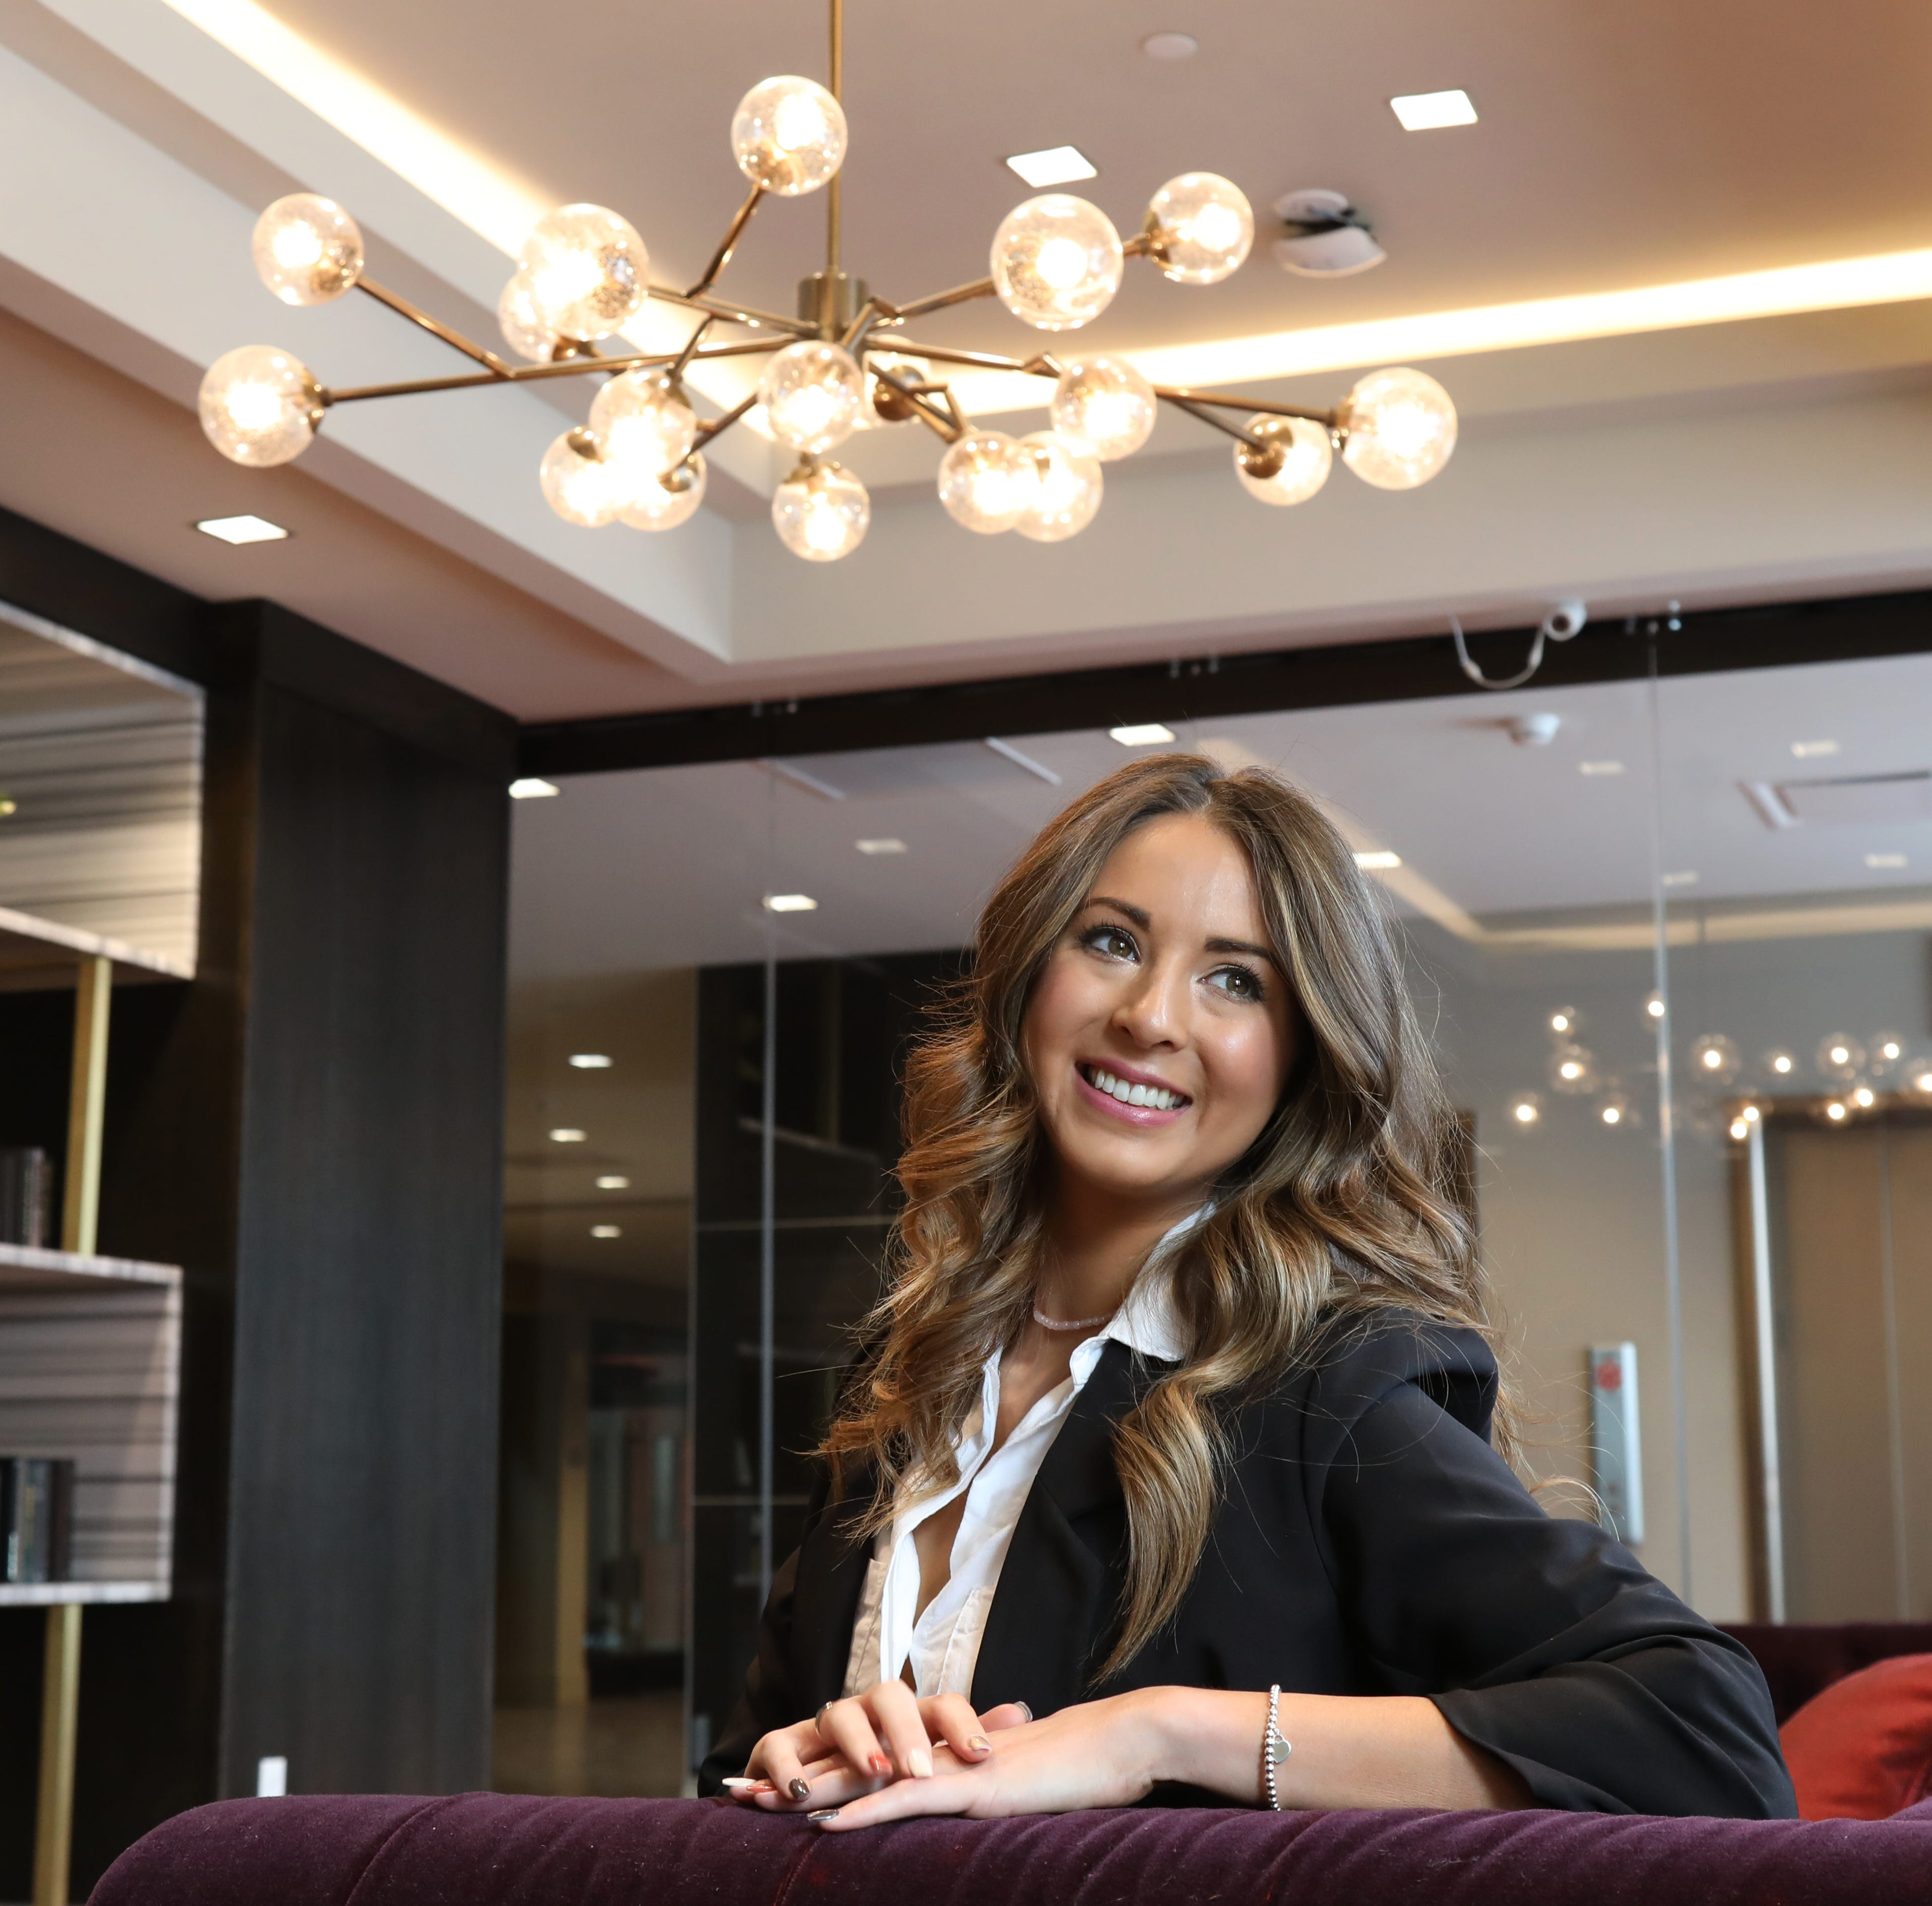 From Manhattan to Rochester: Why one millennial moved downtown to Sibley apartments